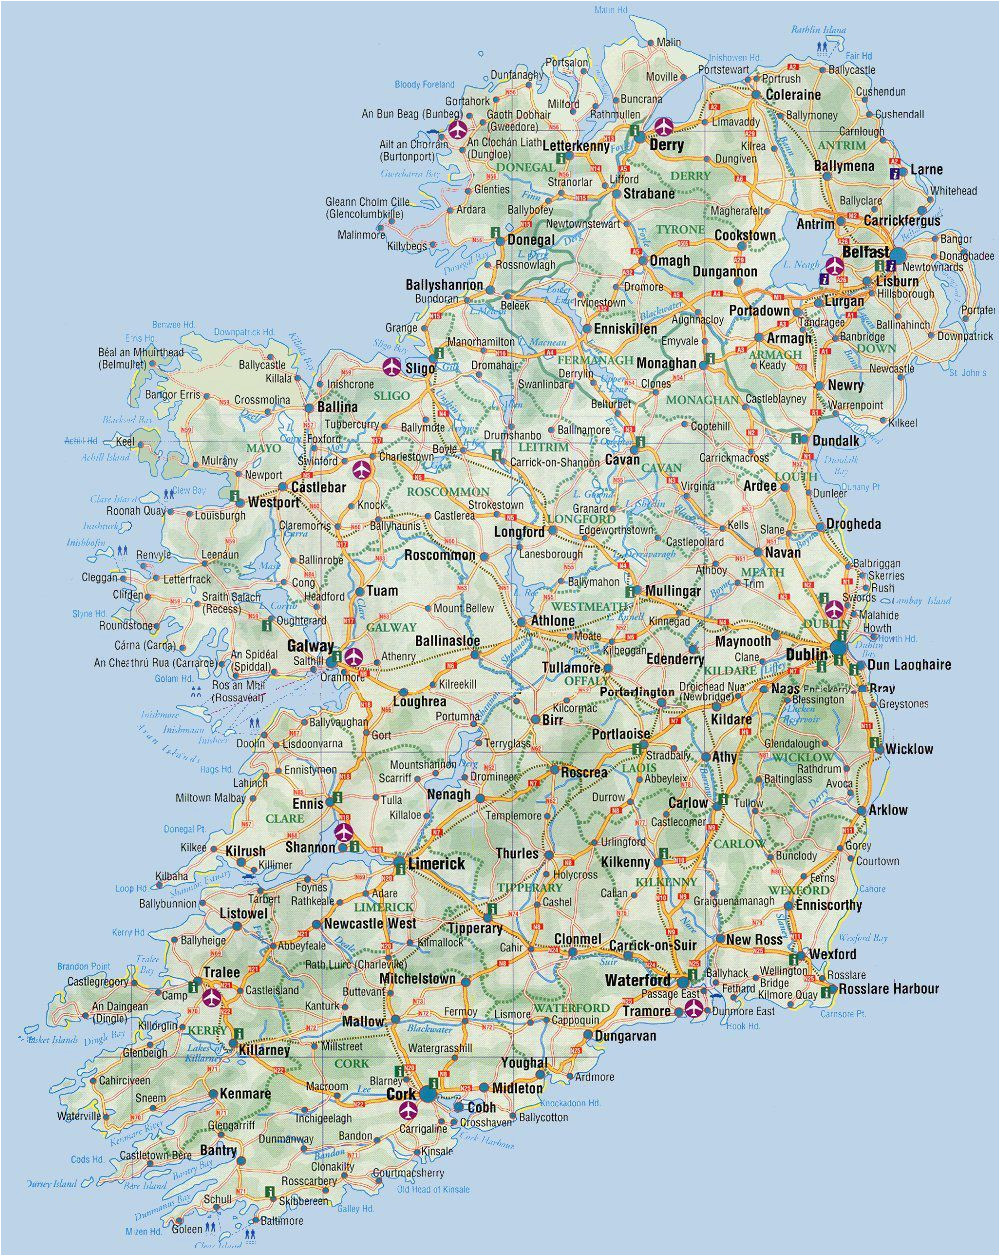 Road Map Of Ireland Counties Road Map Of Ireland Ireland Road Map Ireland In 2019 Ireland